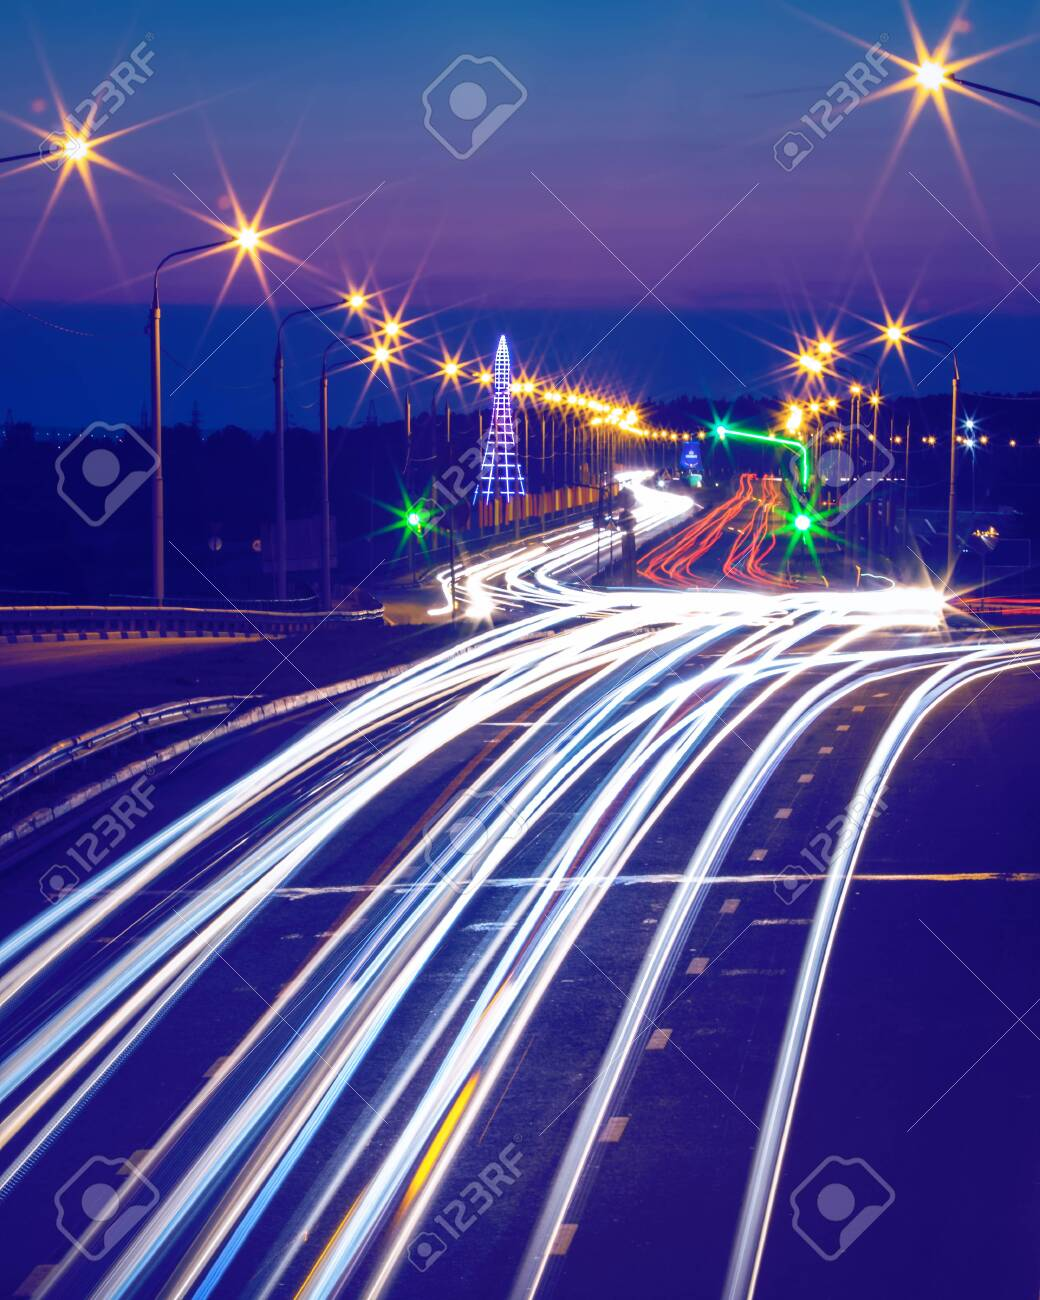 Traces of headlights from cars moving at night on the bridge, illuminated by lanterns. Abstract city landscape with highway at dusk. - 154893188